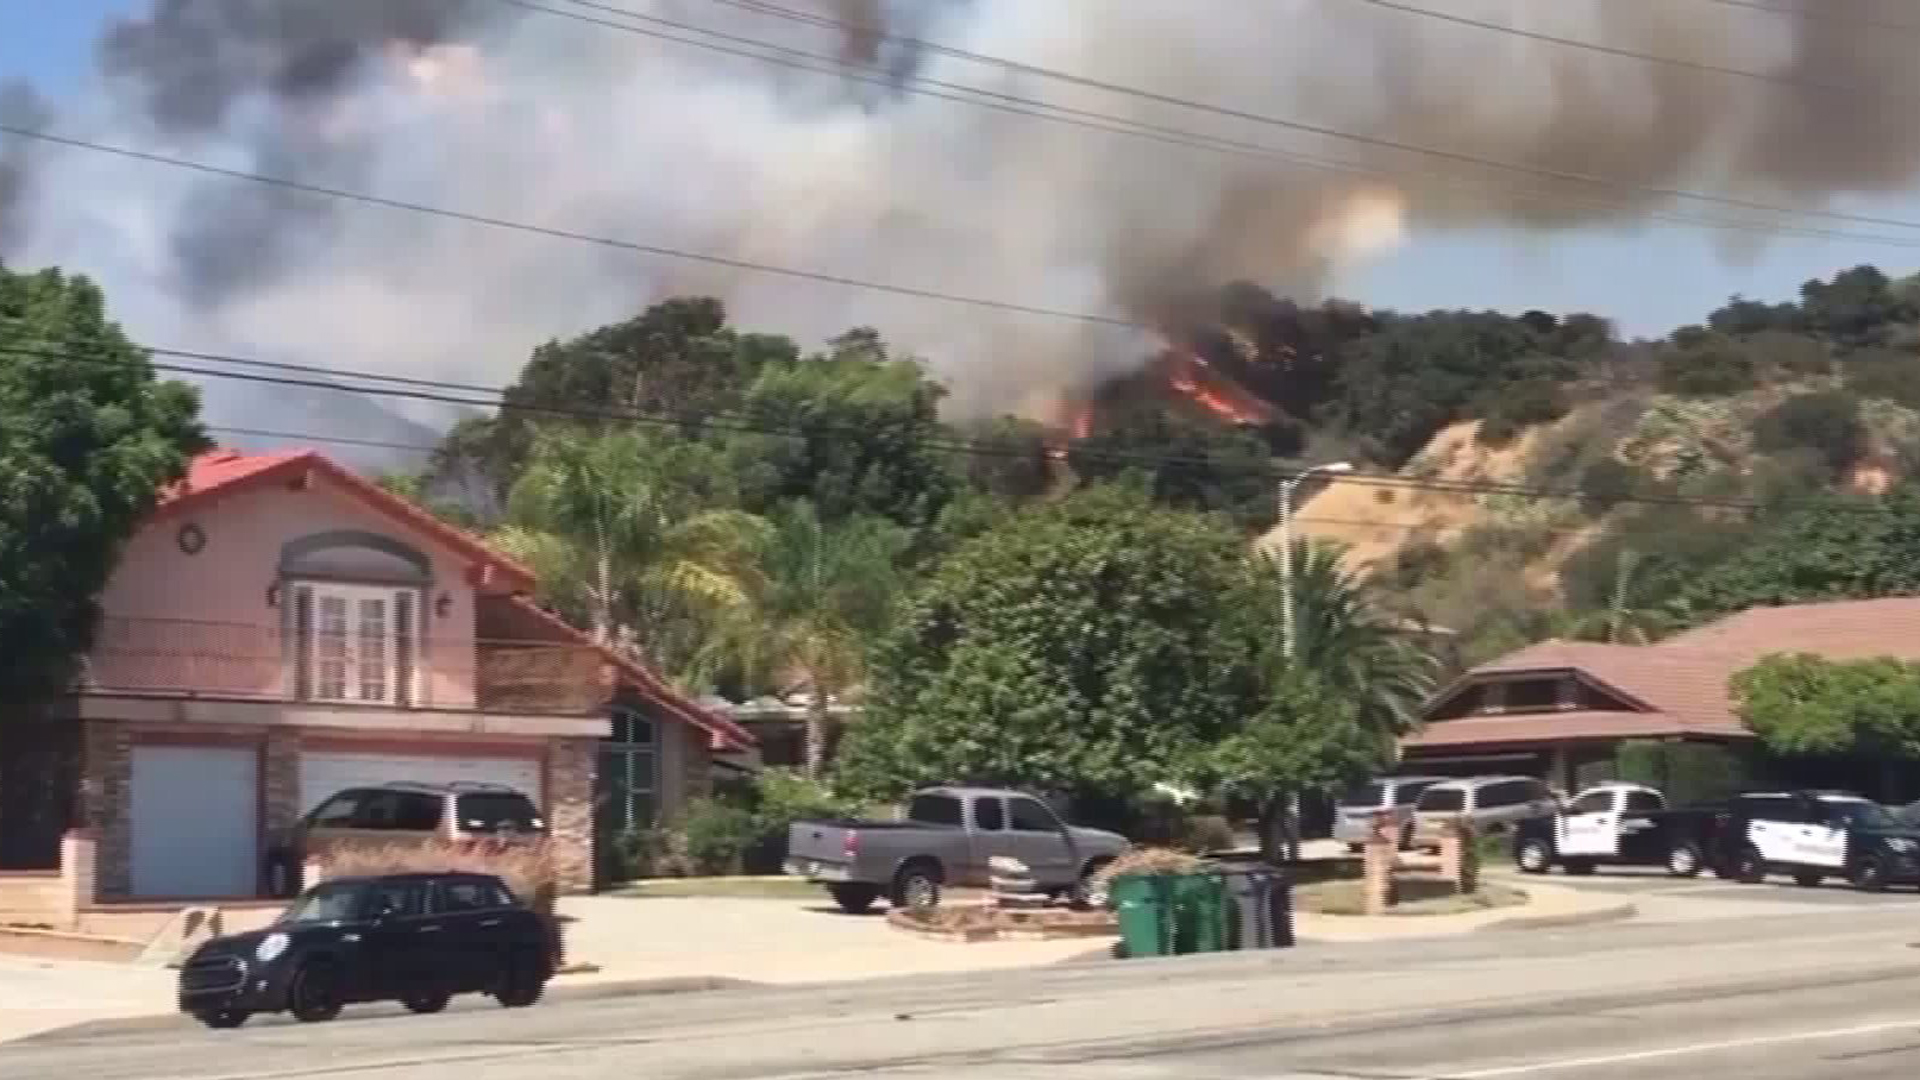 A fire in La Verne prompted voluntary evacuations in one neighborhood on July 23, 2017. (Courtesy Chris Casamassa)